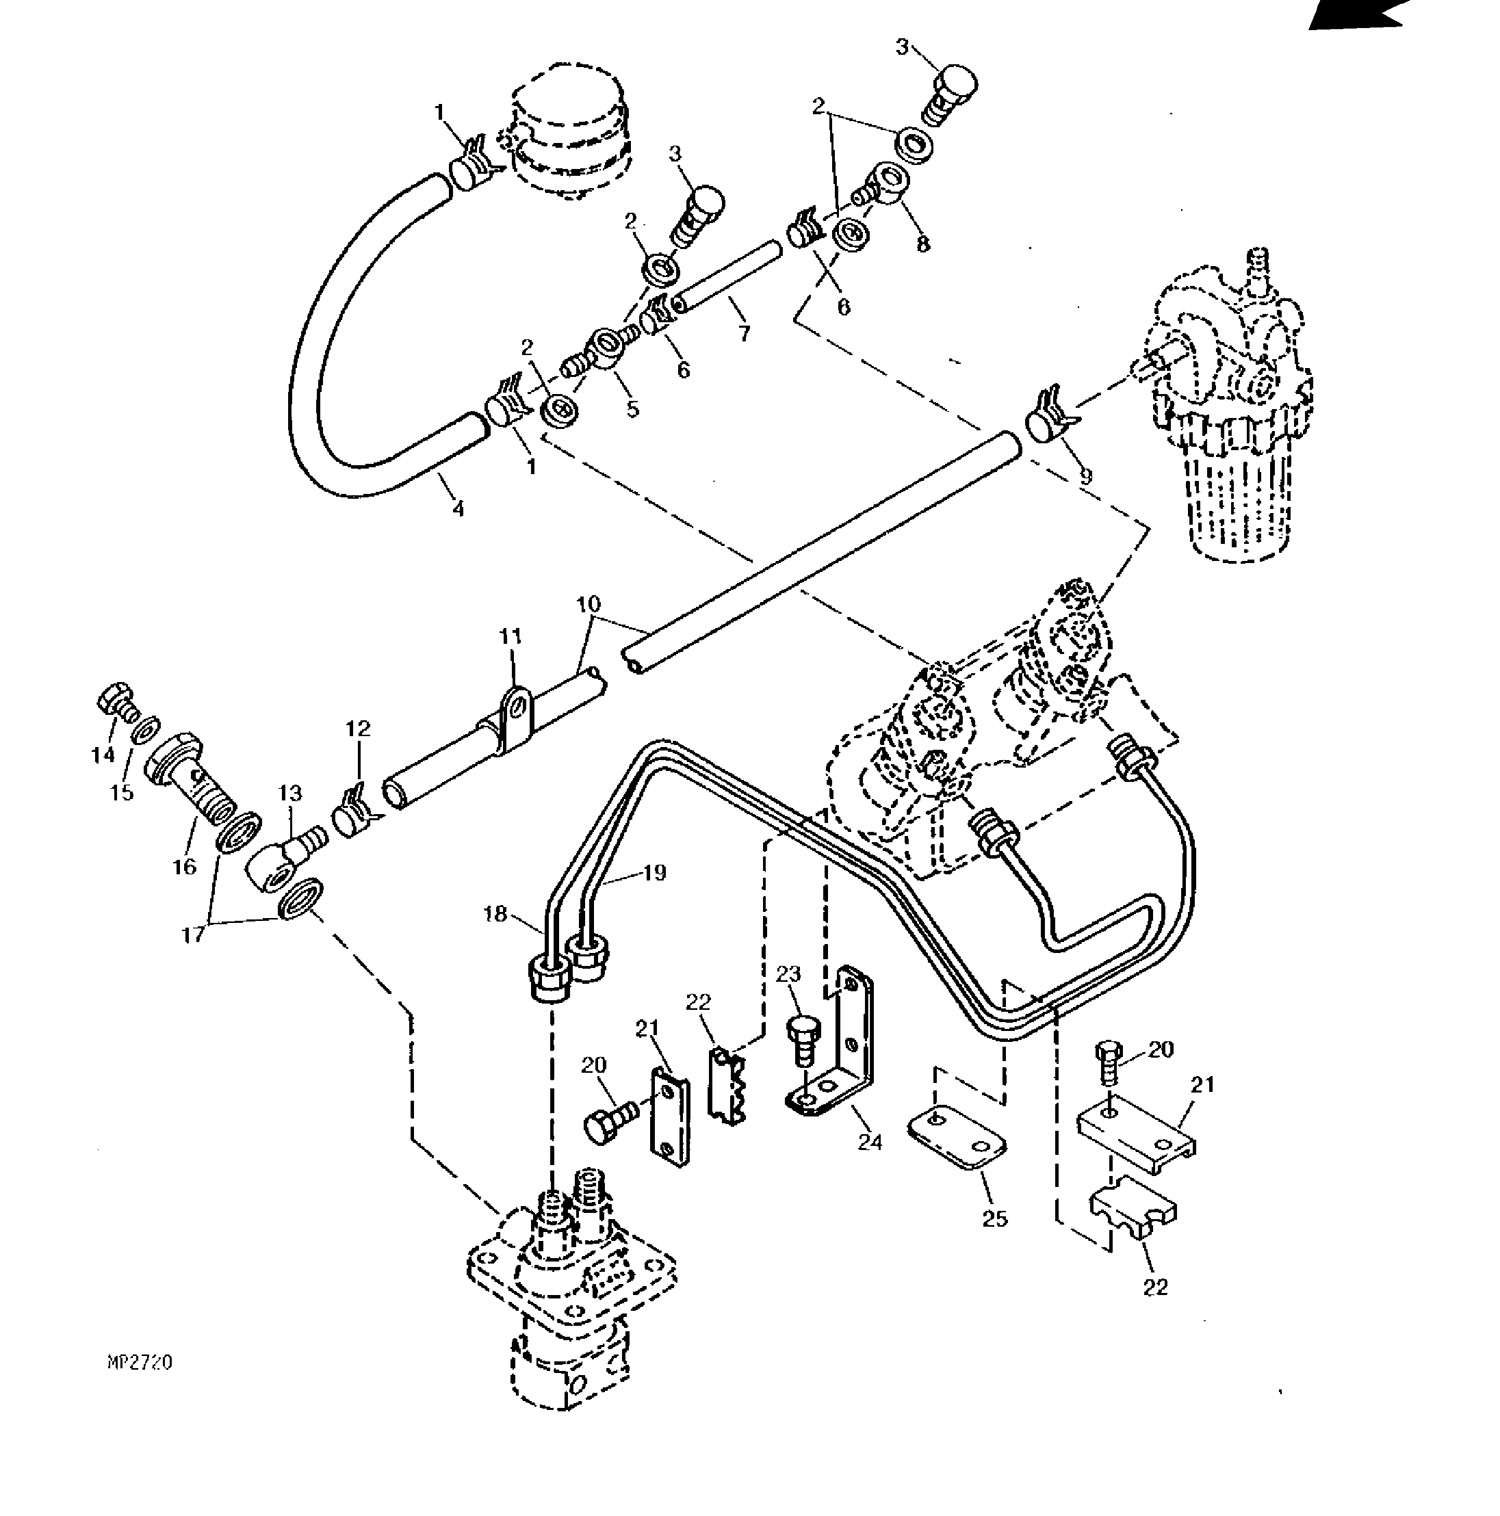 Wiring Diagram For John Deere Trail Buck : John deere skid steer parts diagram automotive